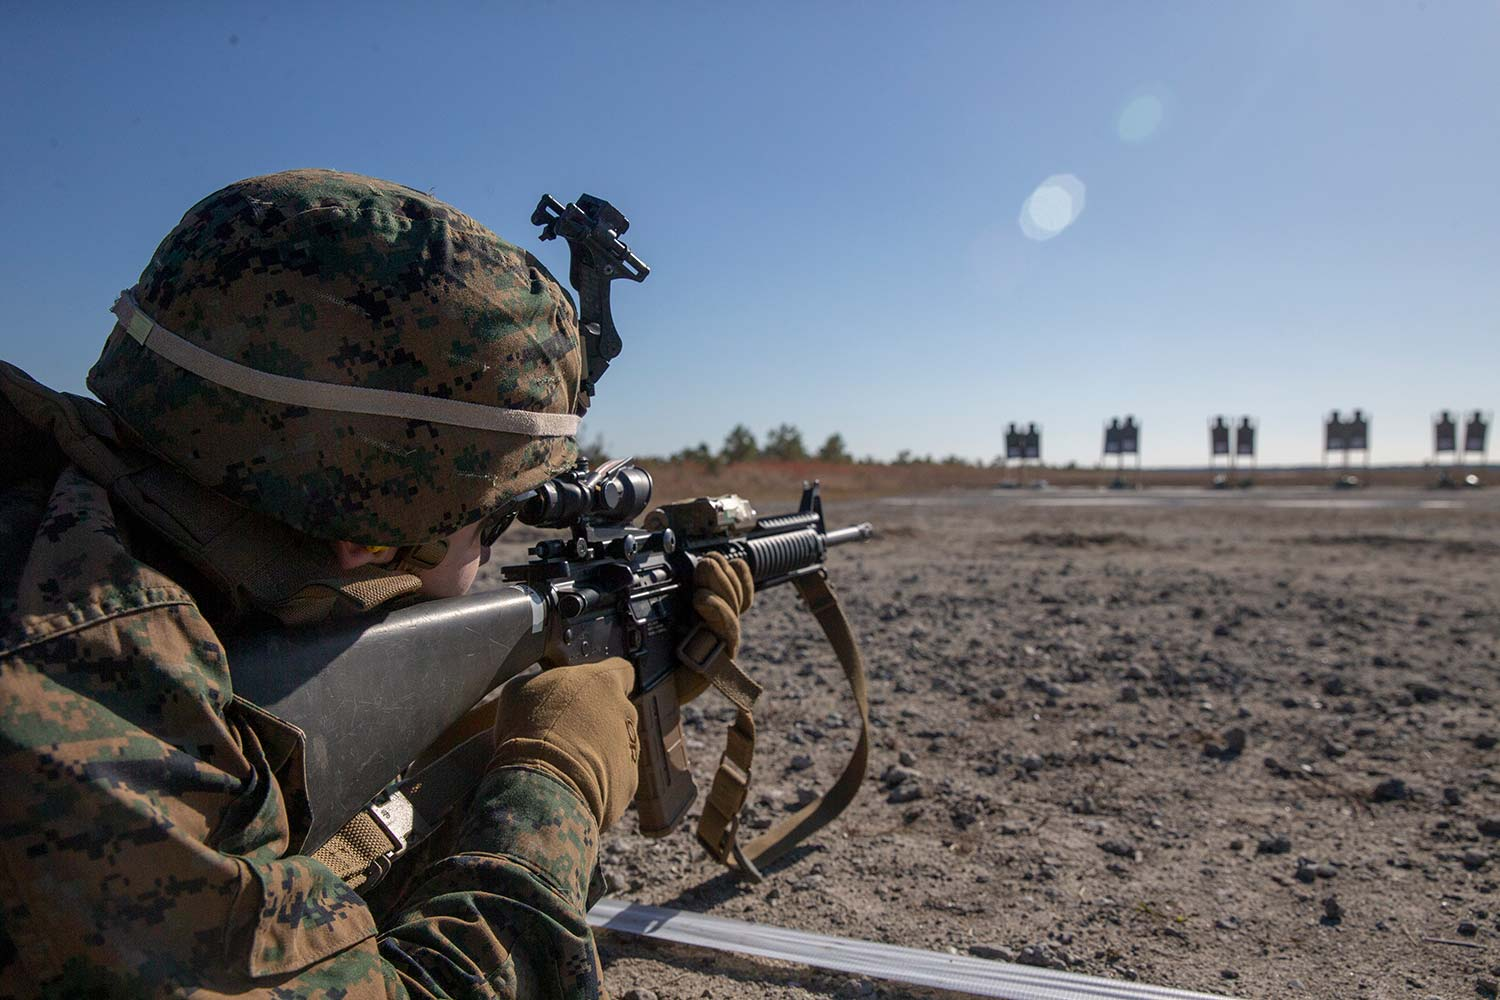 The Marine Corps 4 Weapons Safety Rules